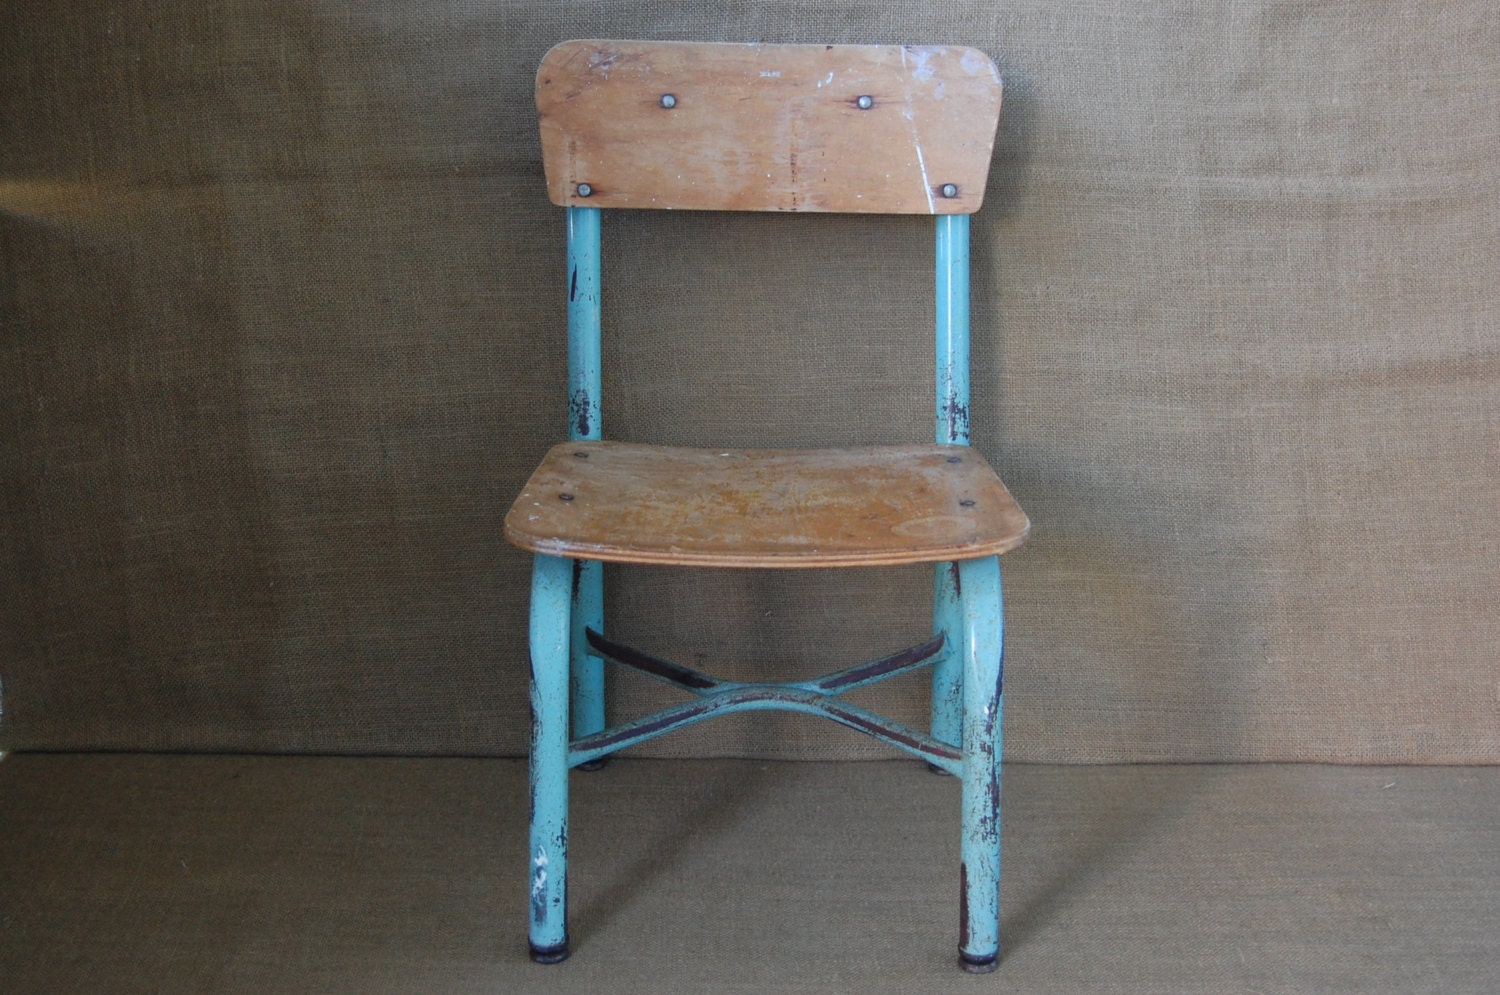 Vintage Childs School Chair Vintage Desk Chair Vintage Metal